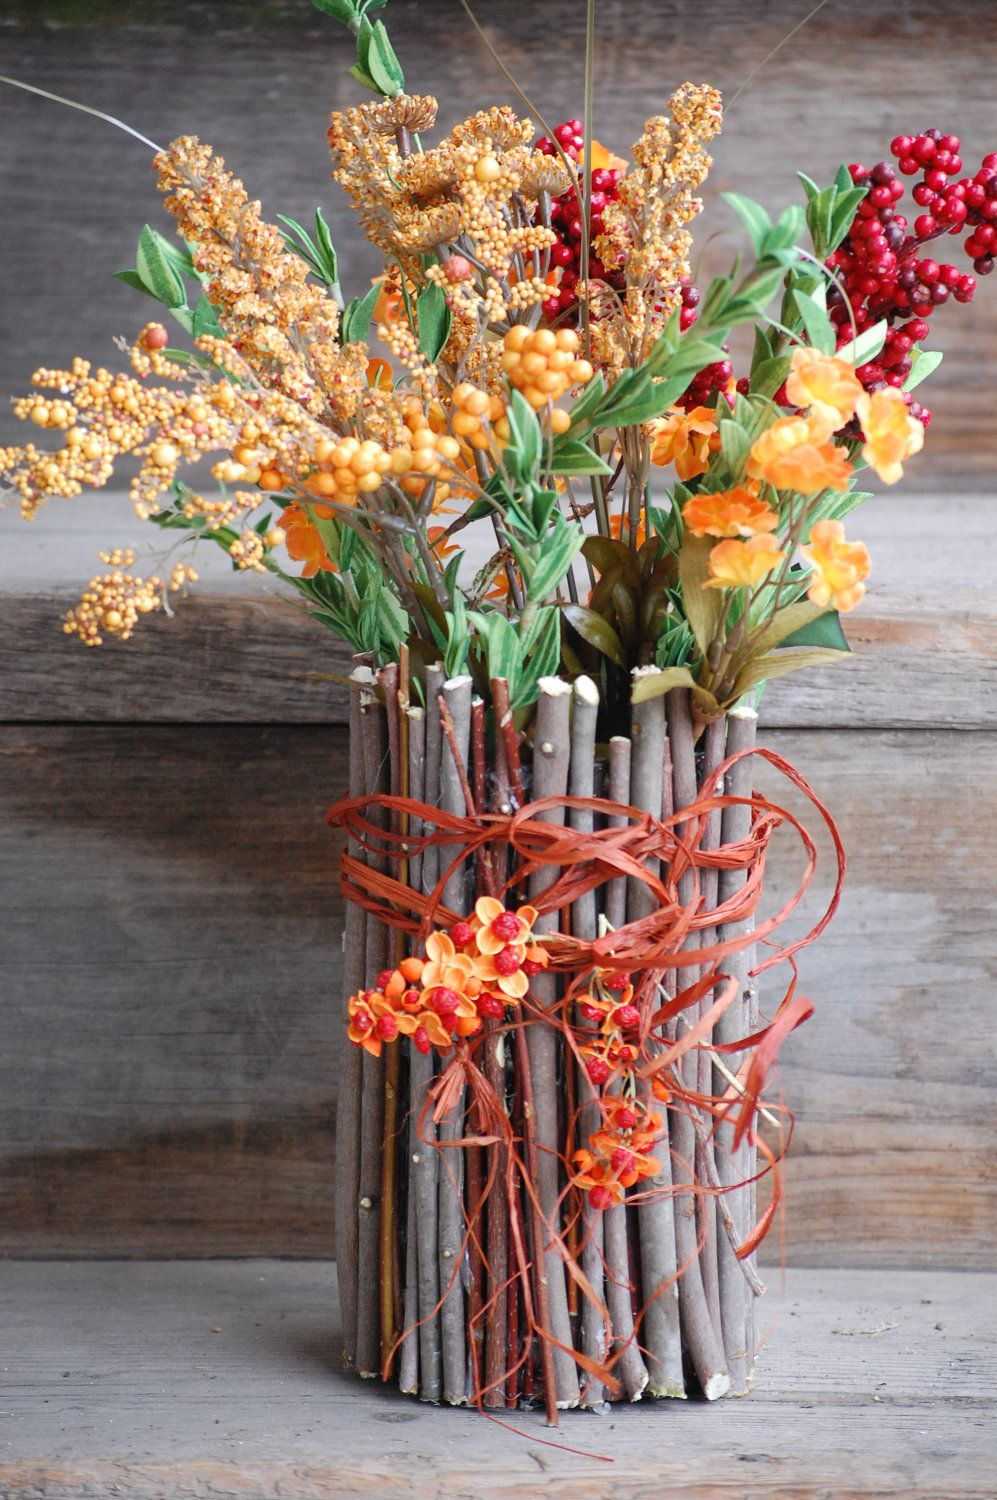 Twig container natural wood stick vase camp decor